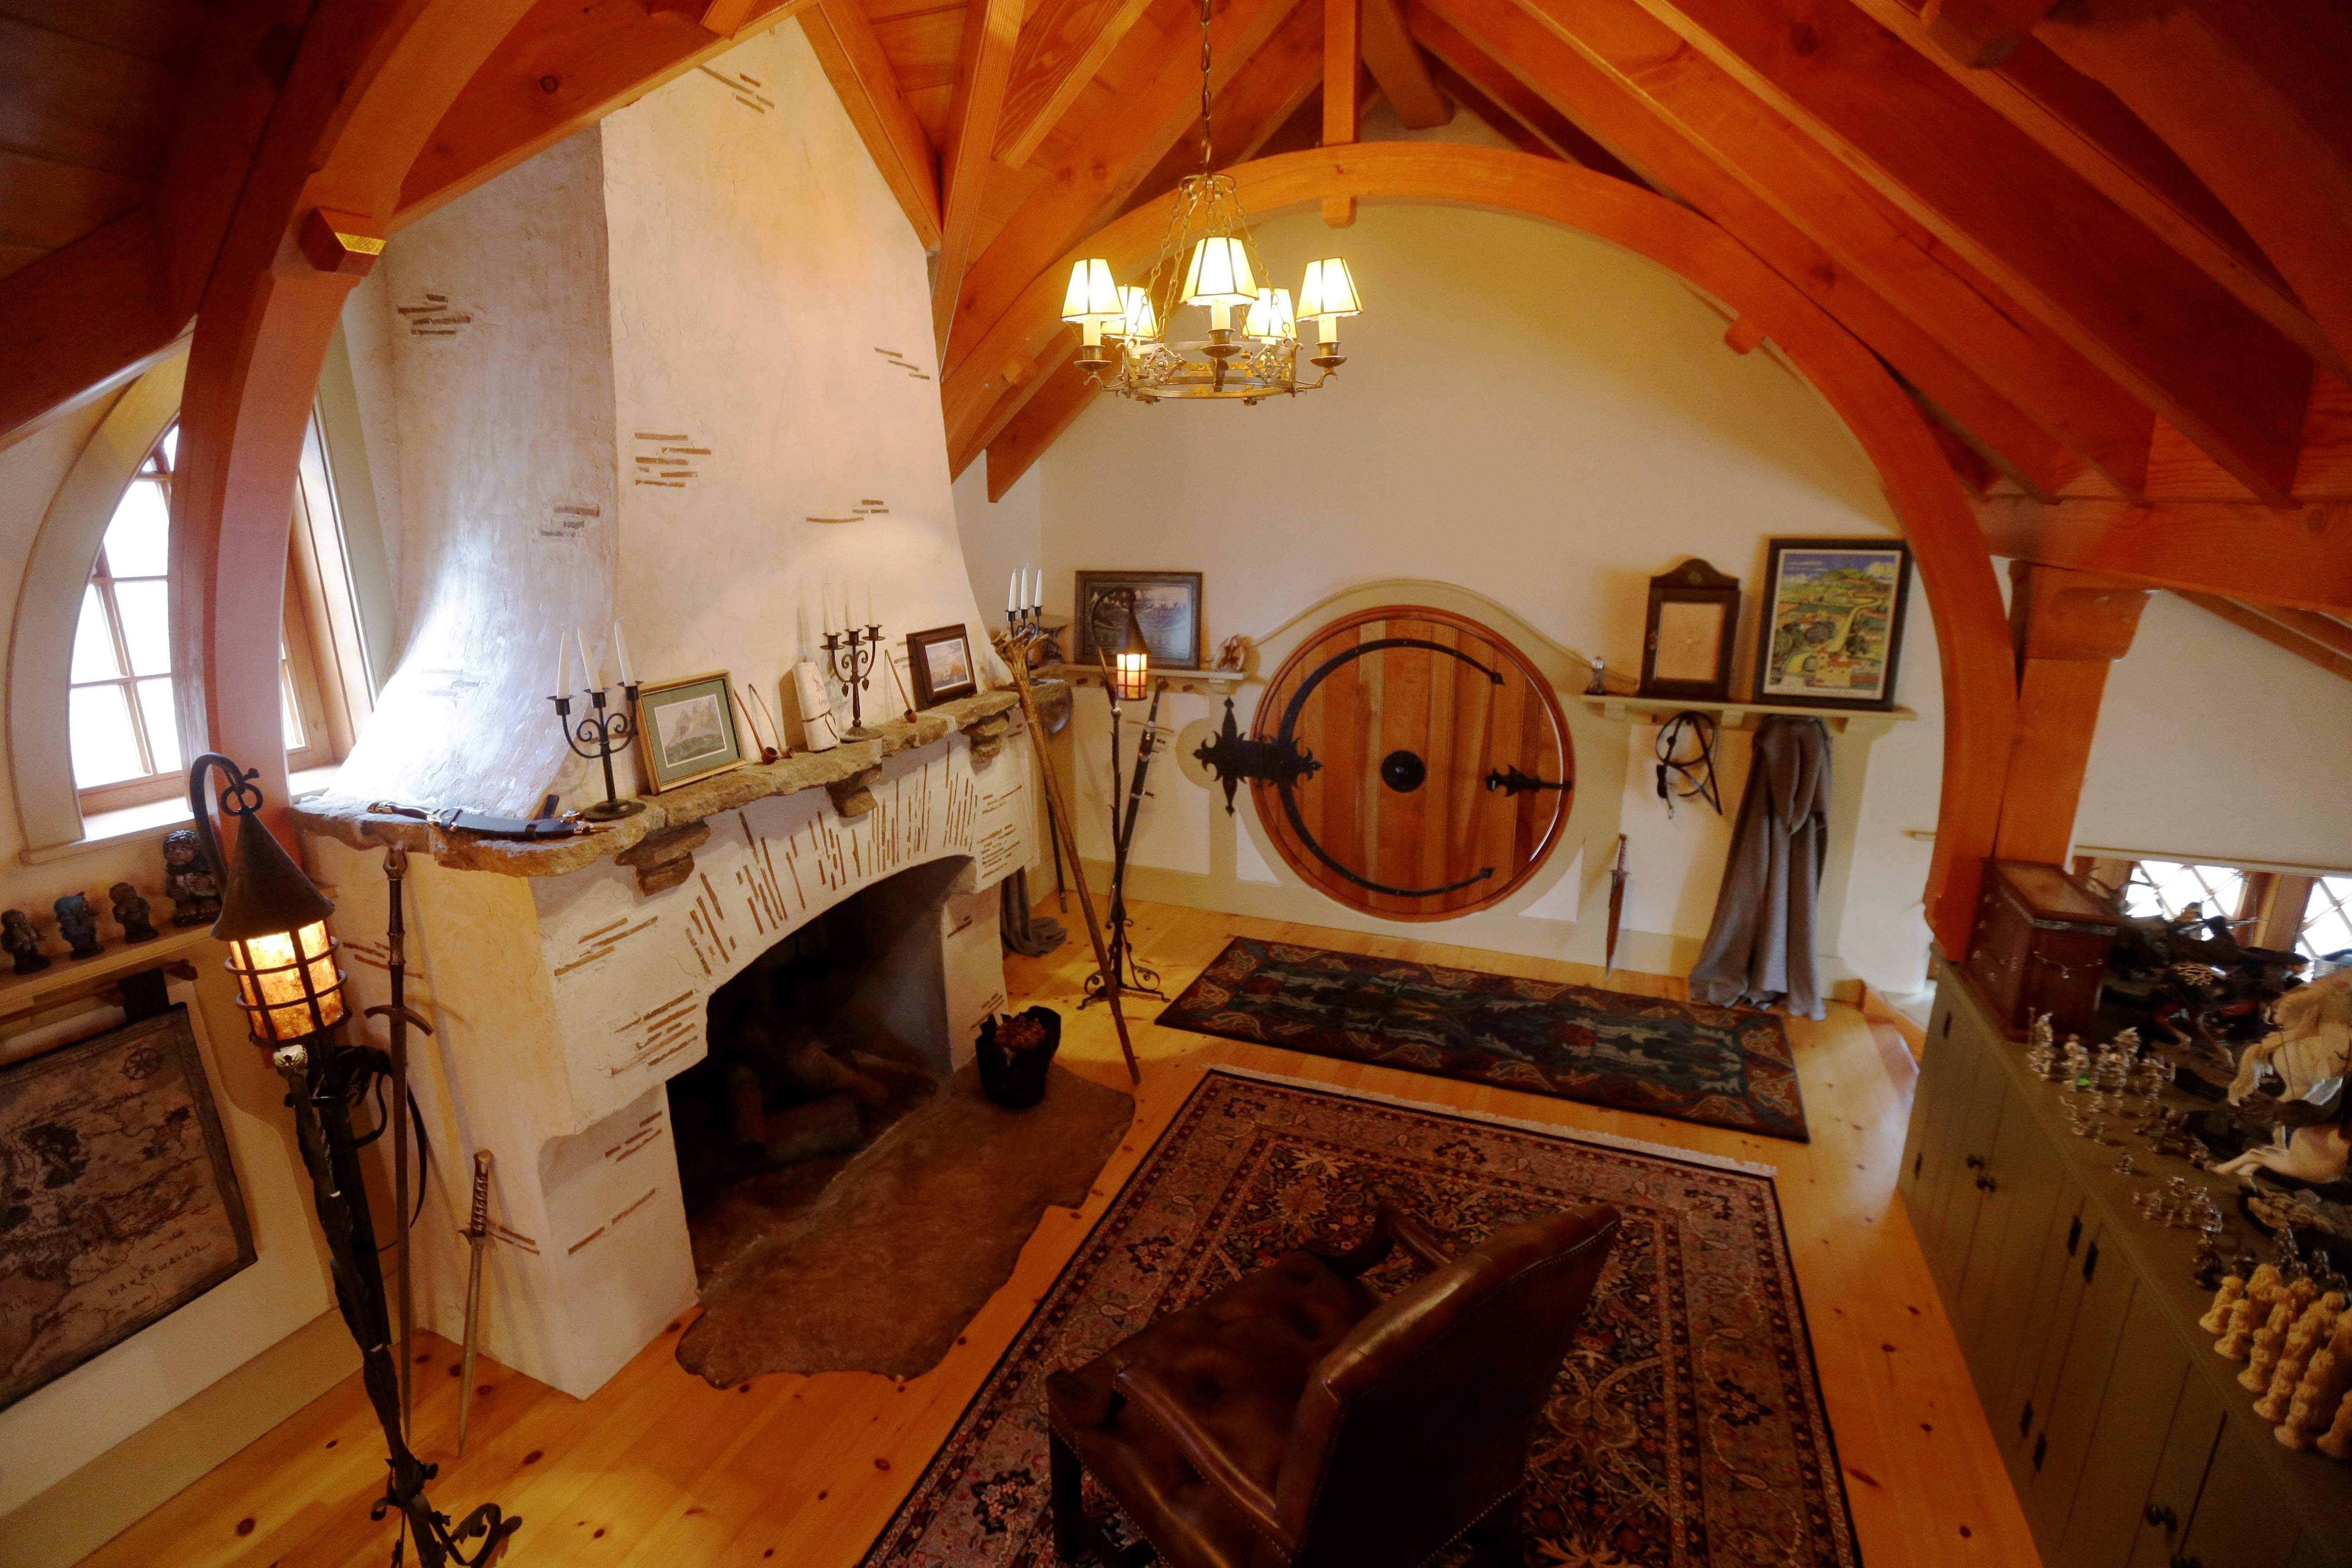 Architect Peter Archer has designed a \u201cHobbit House\u201d in Chester County Pennsylvania near Philadelphia containing a world-class collection of J.R.R. ... & This Tolkien Hobbit house is at home in Pennsylvania